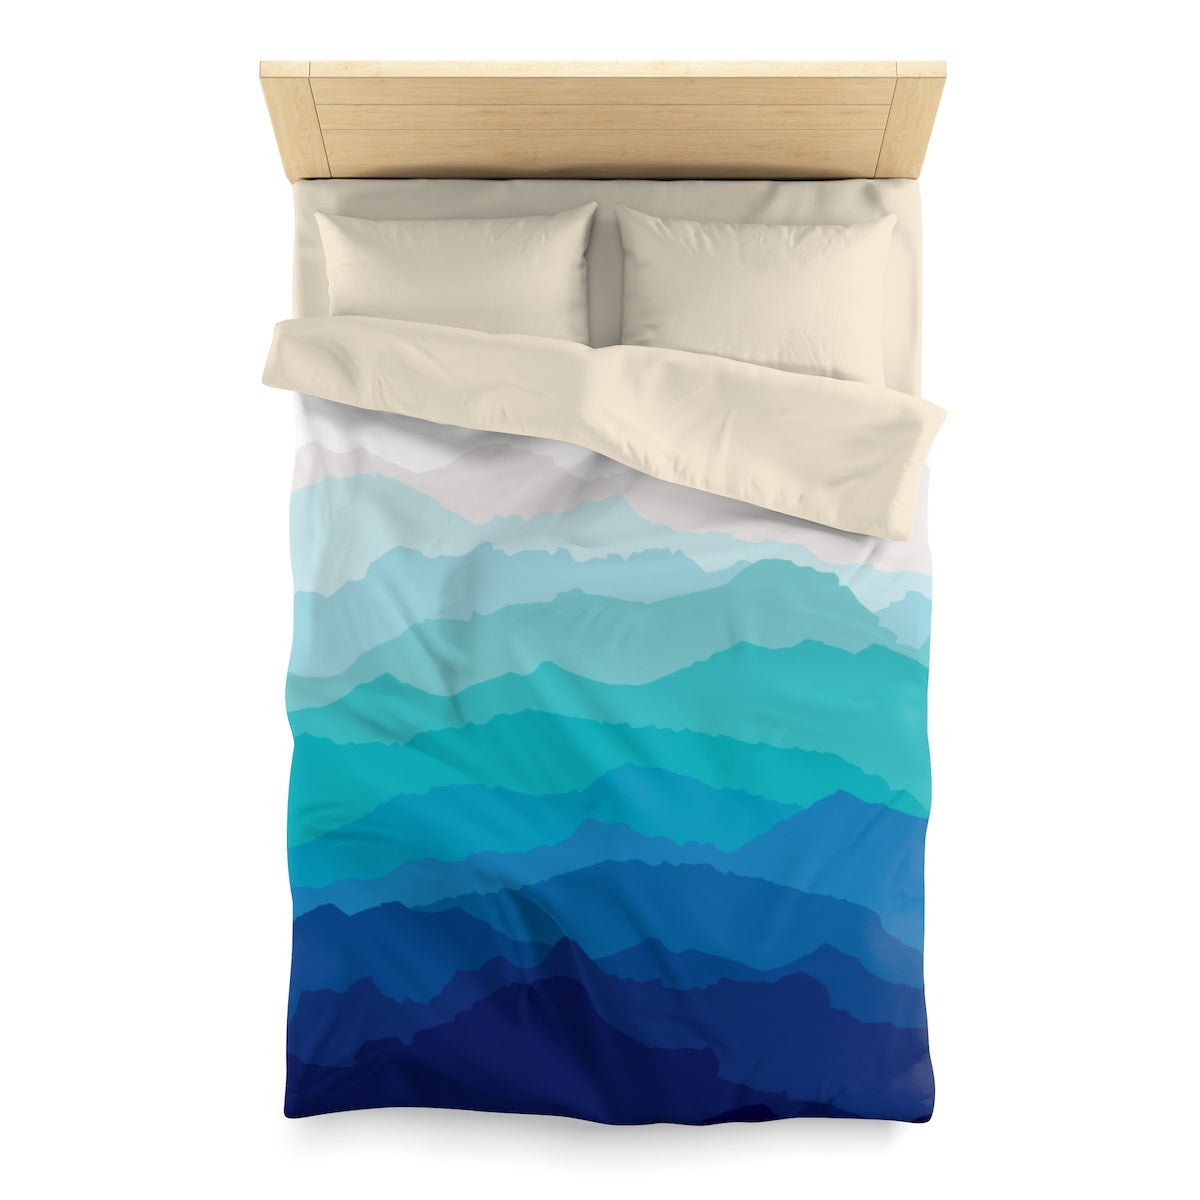 Blue Mist Mountain Duvet Cover